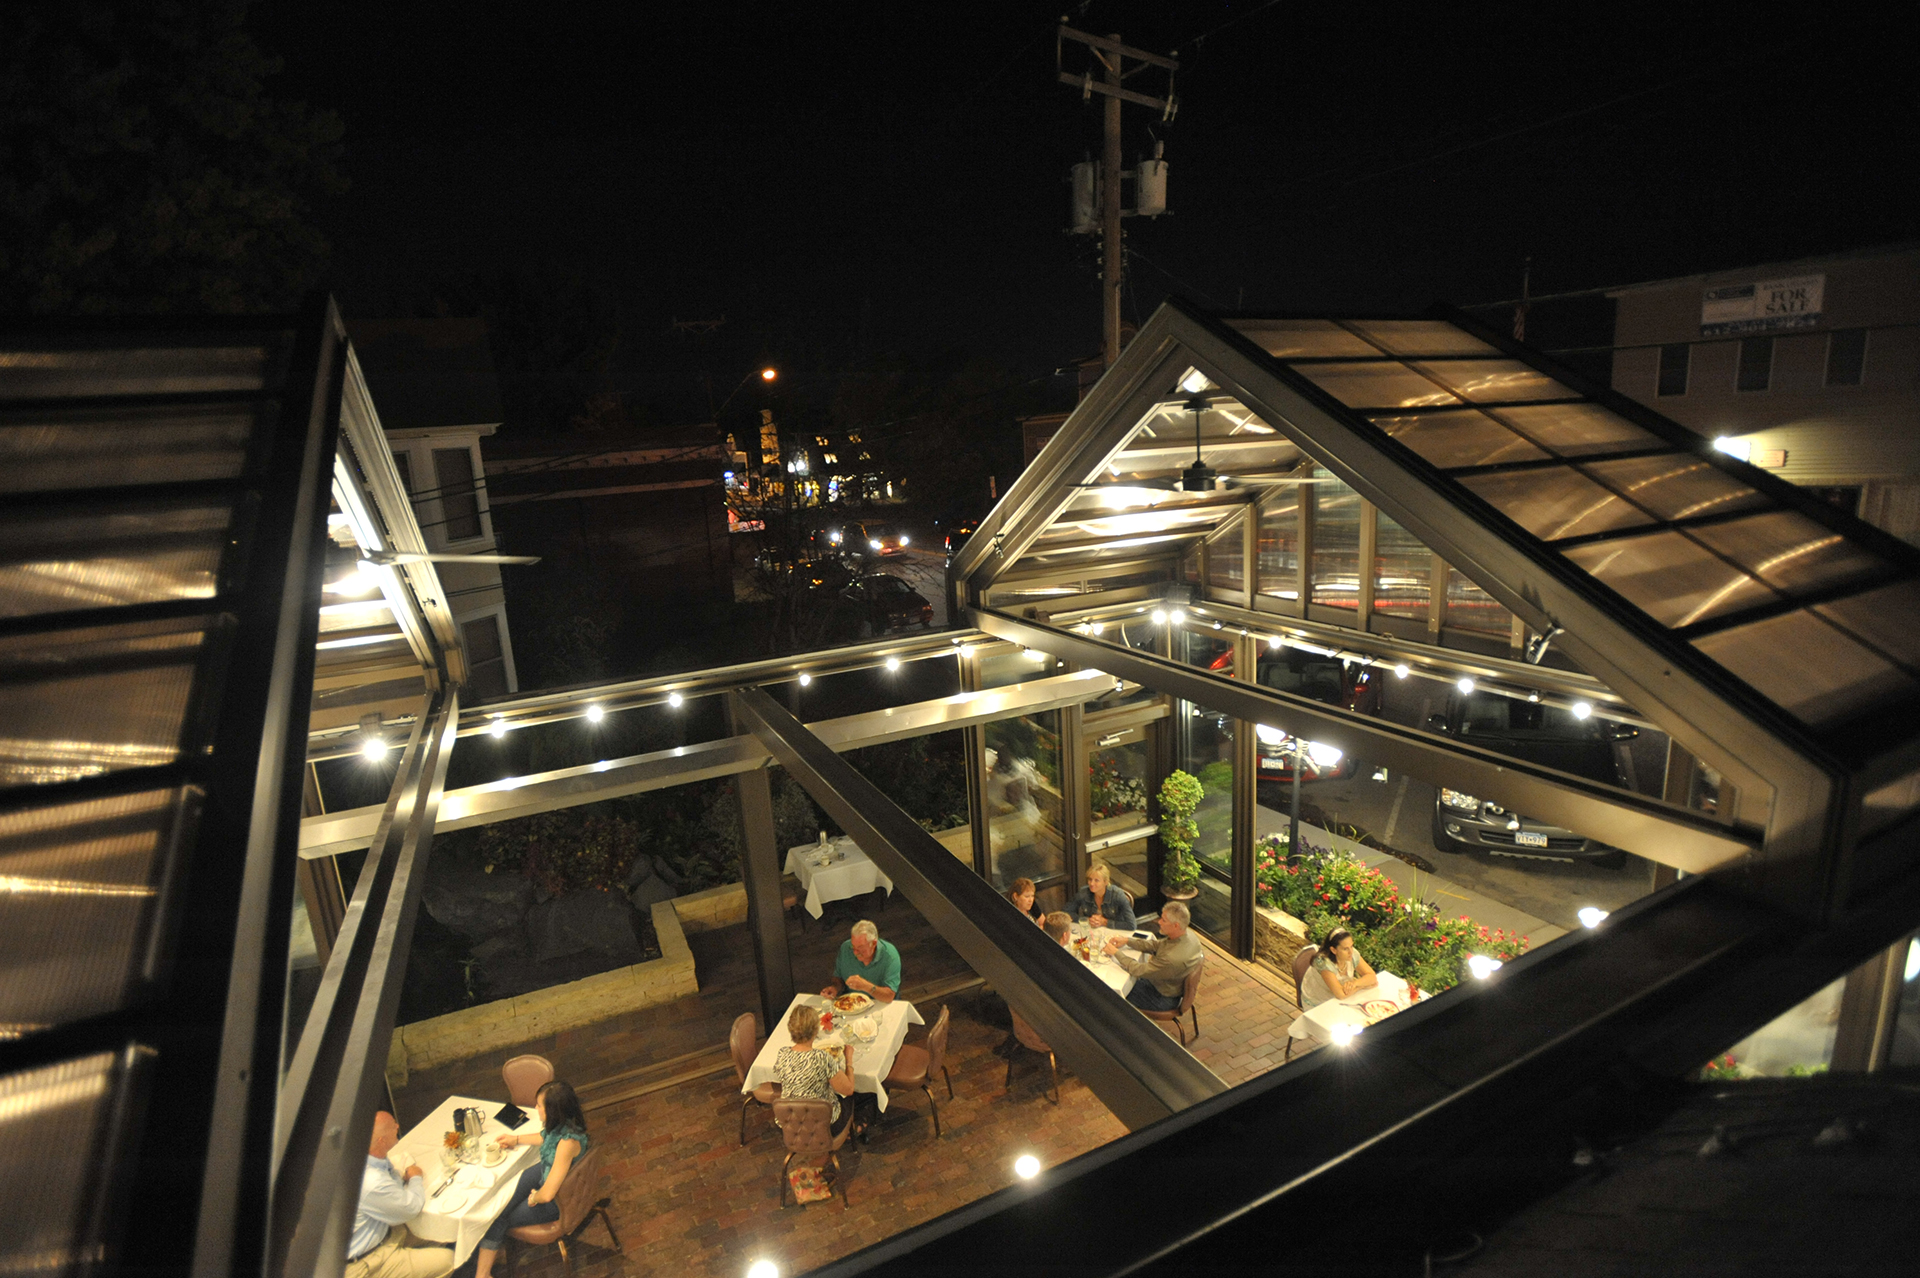 Arial view of retractable roof system on a restaurant patio